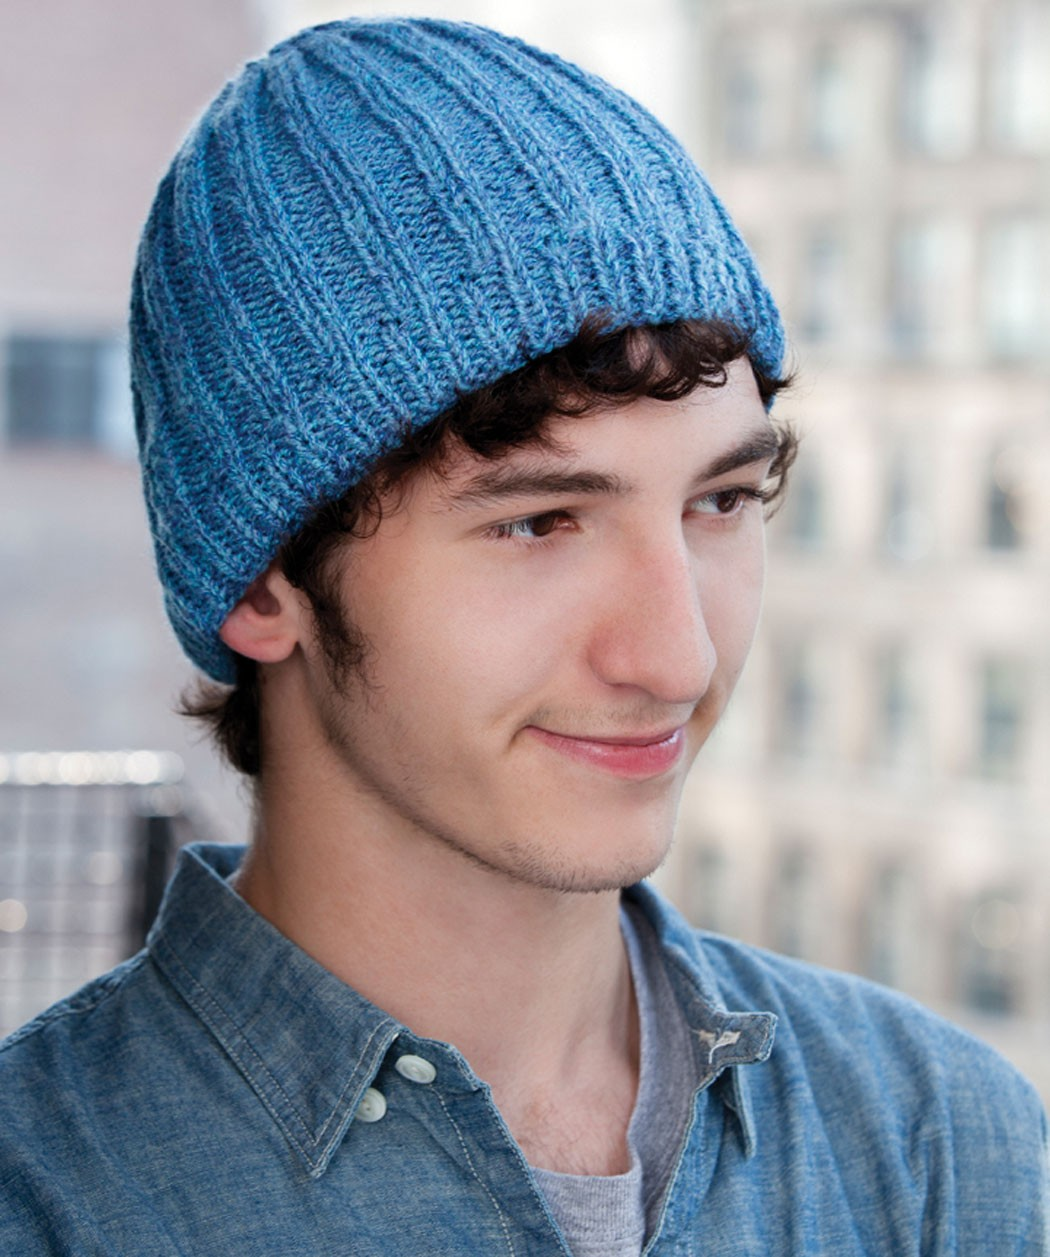 Knitting Pattern Guy : Men s Knit Hat Pattern A Knitting Blog